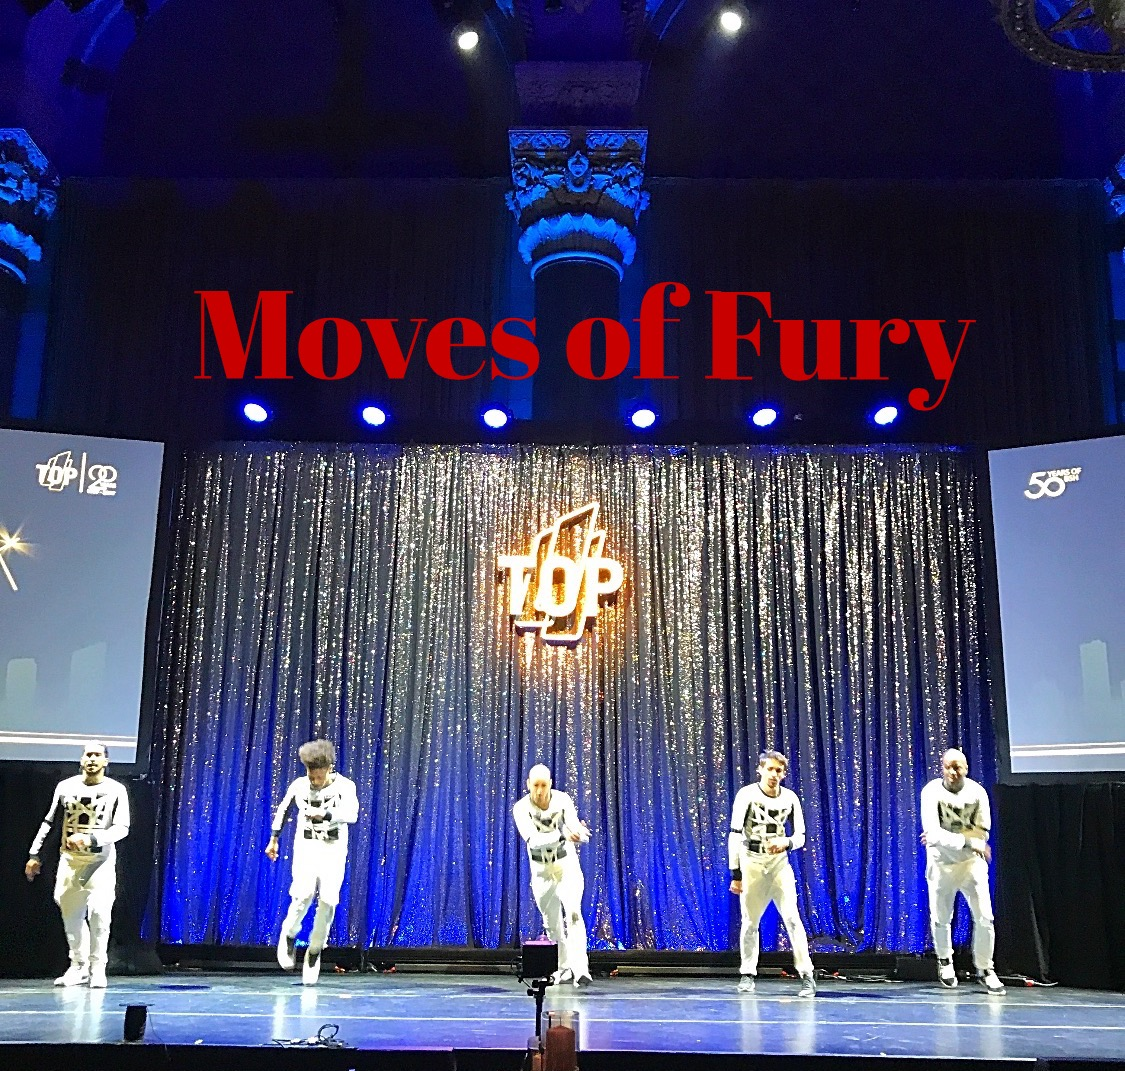 Moves of Fury